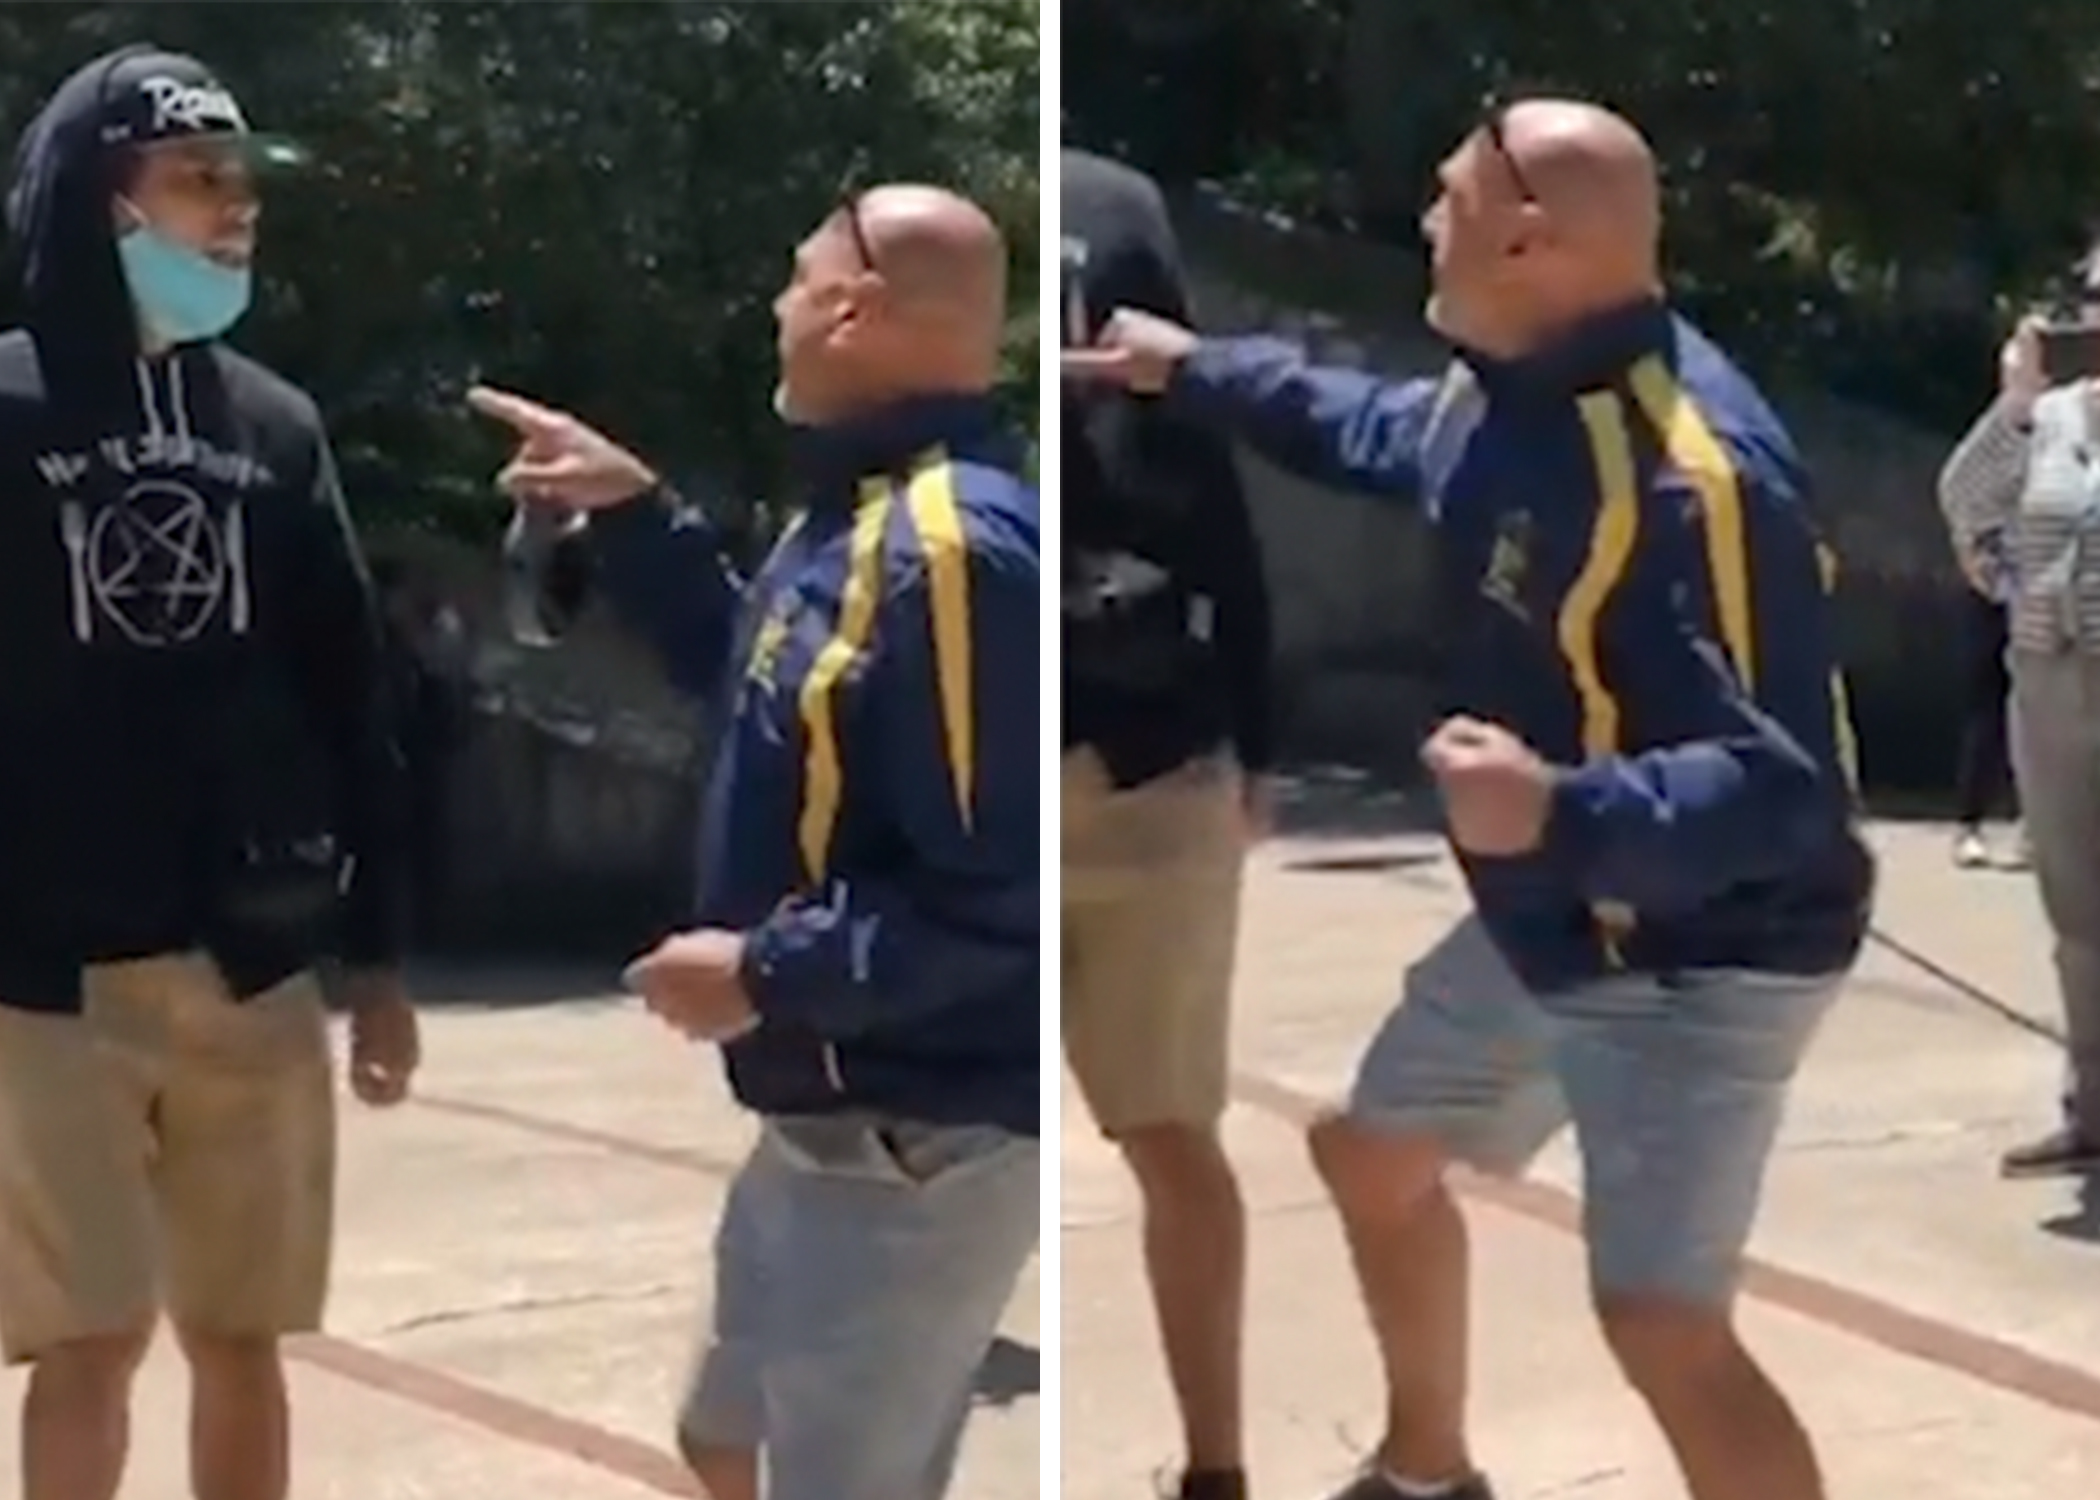 Screenshots from a provided video showing retired Cook County judge Robert Bertucci taking a swing at a protester.